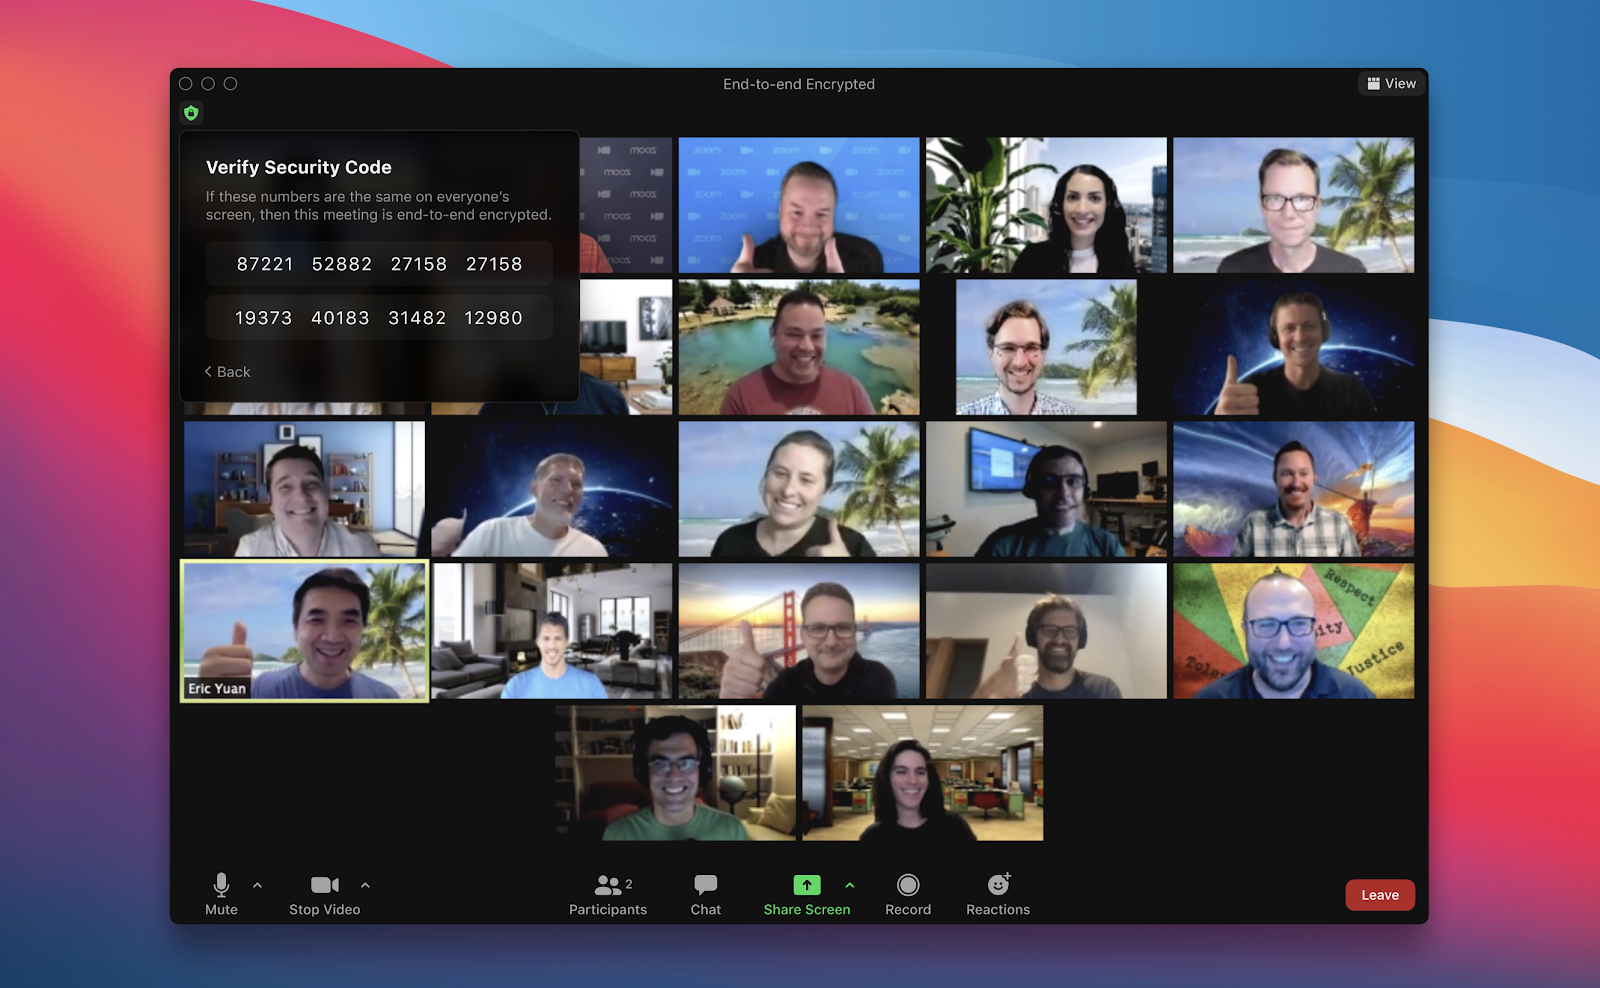 Making Video Calls with Zoom and More